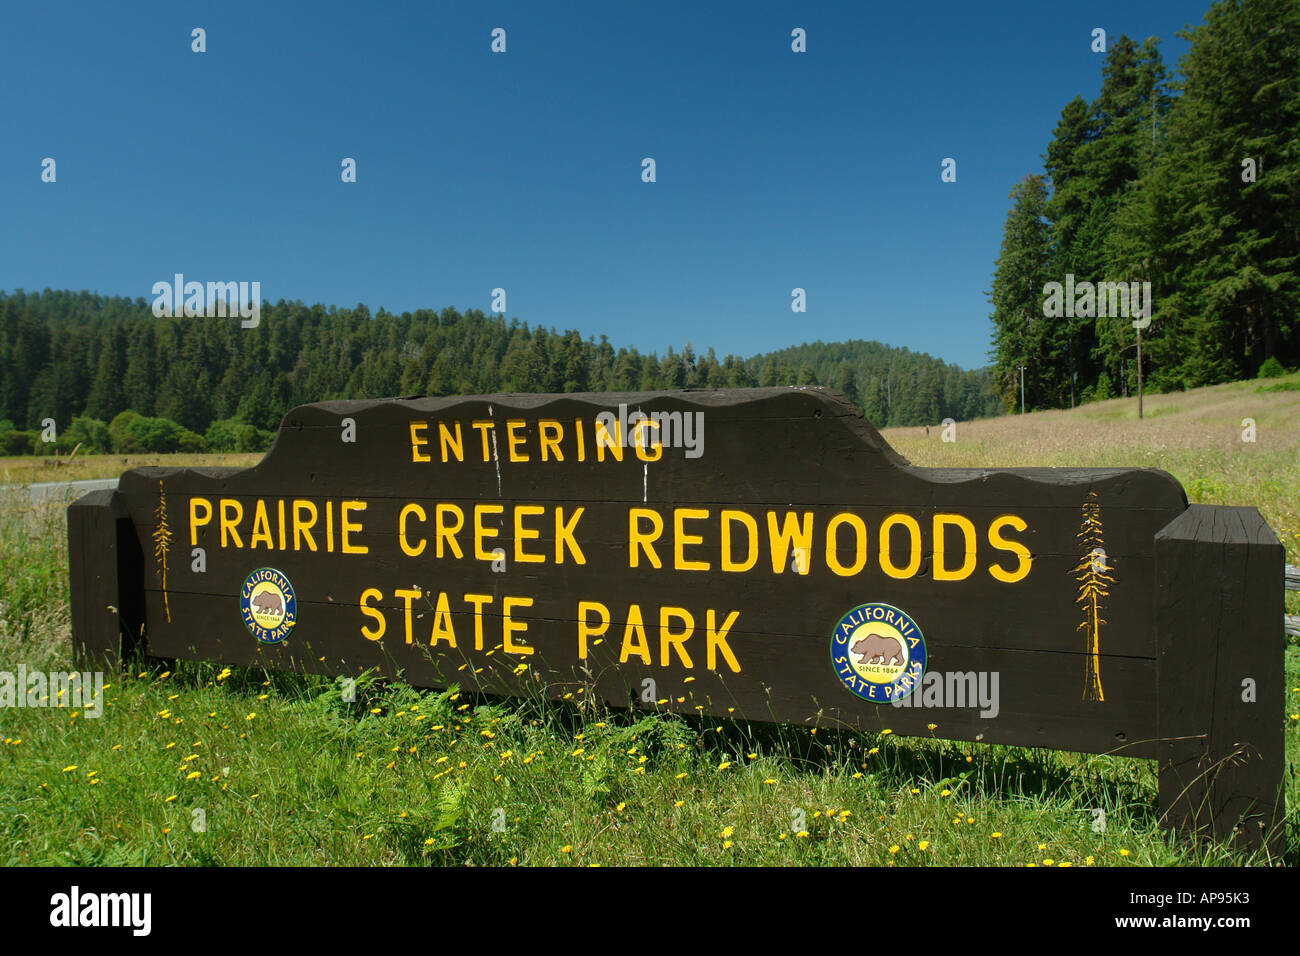 AJD51315, Prairie Creek Redwoods State Park, CA, California, Redwood National and State Parks, entrance sign - Stock Image